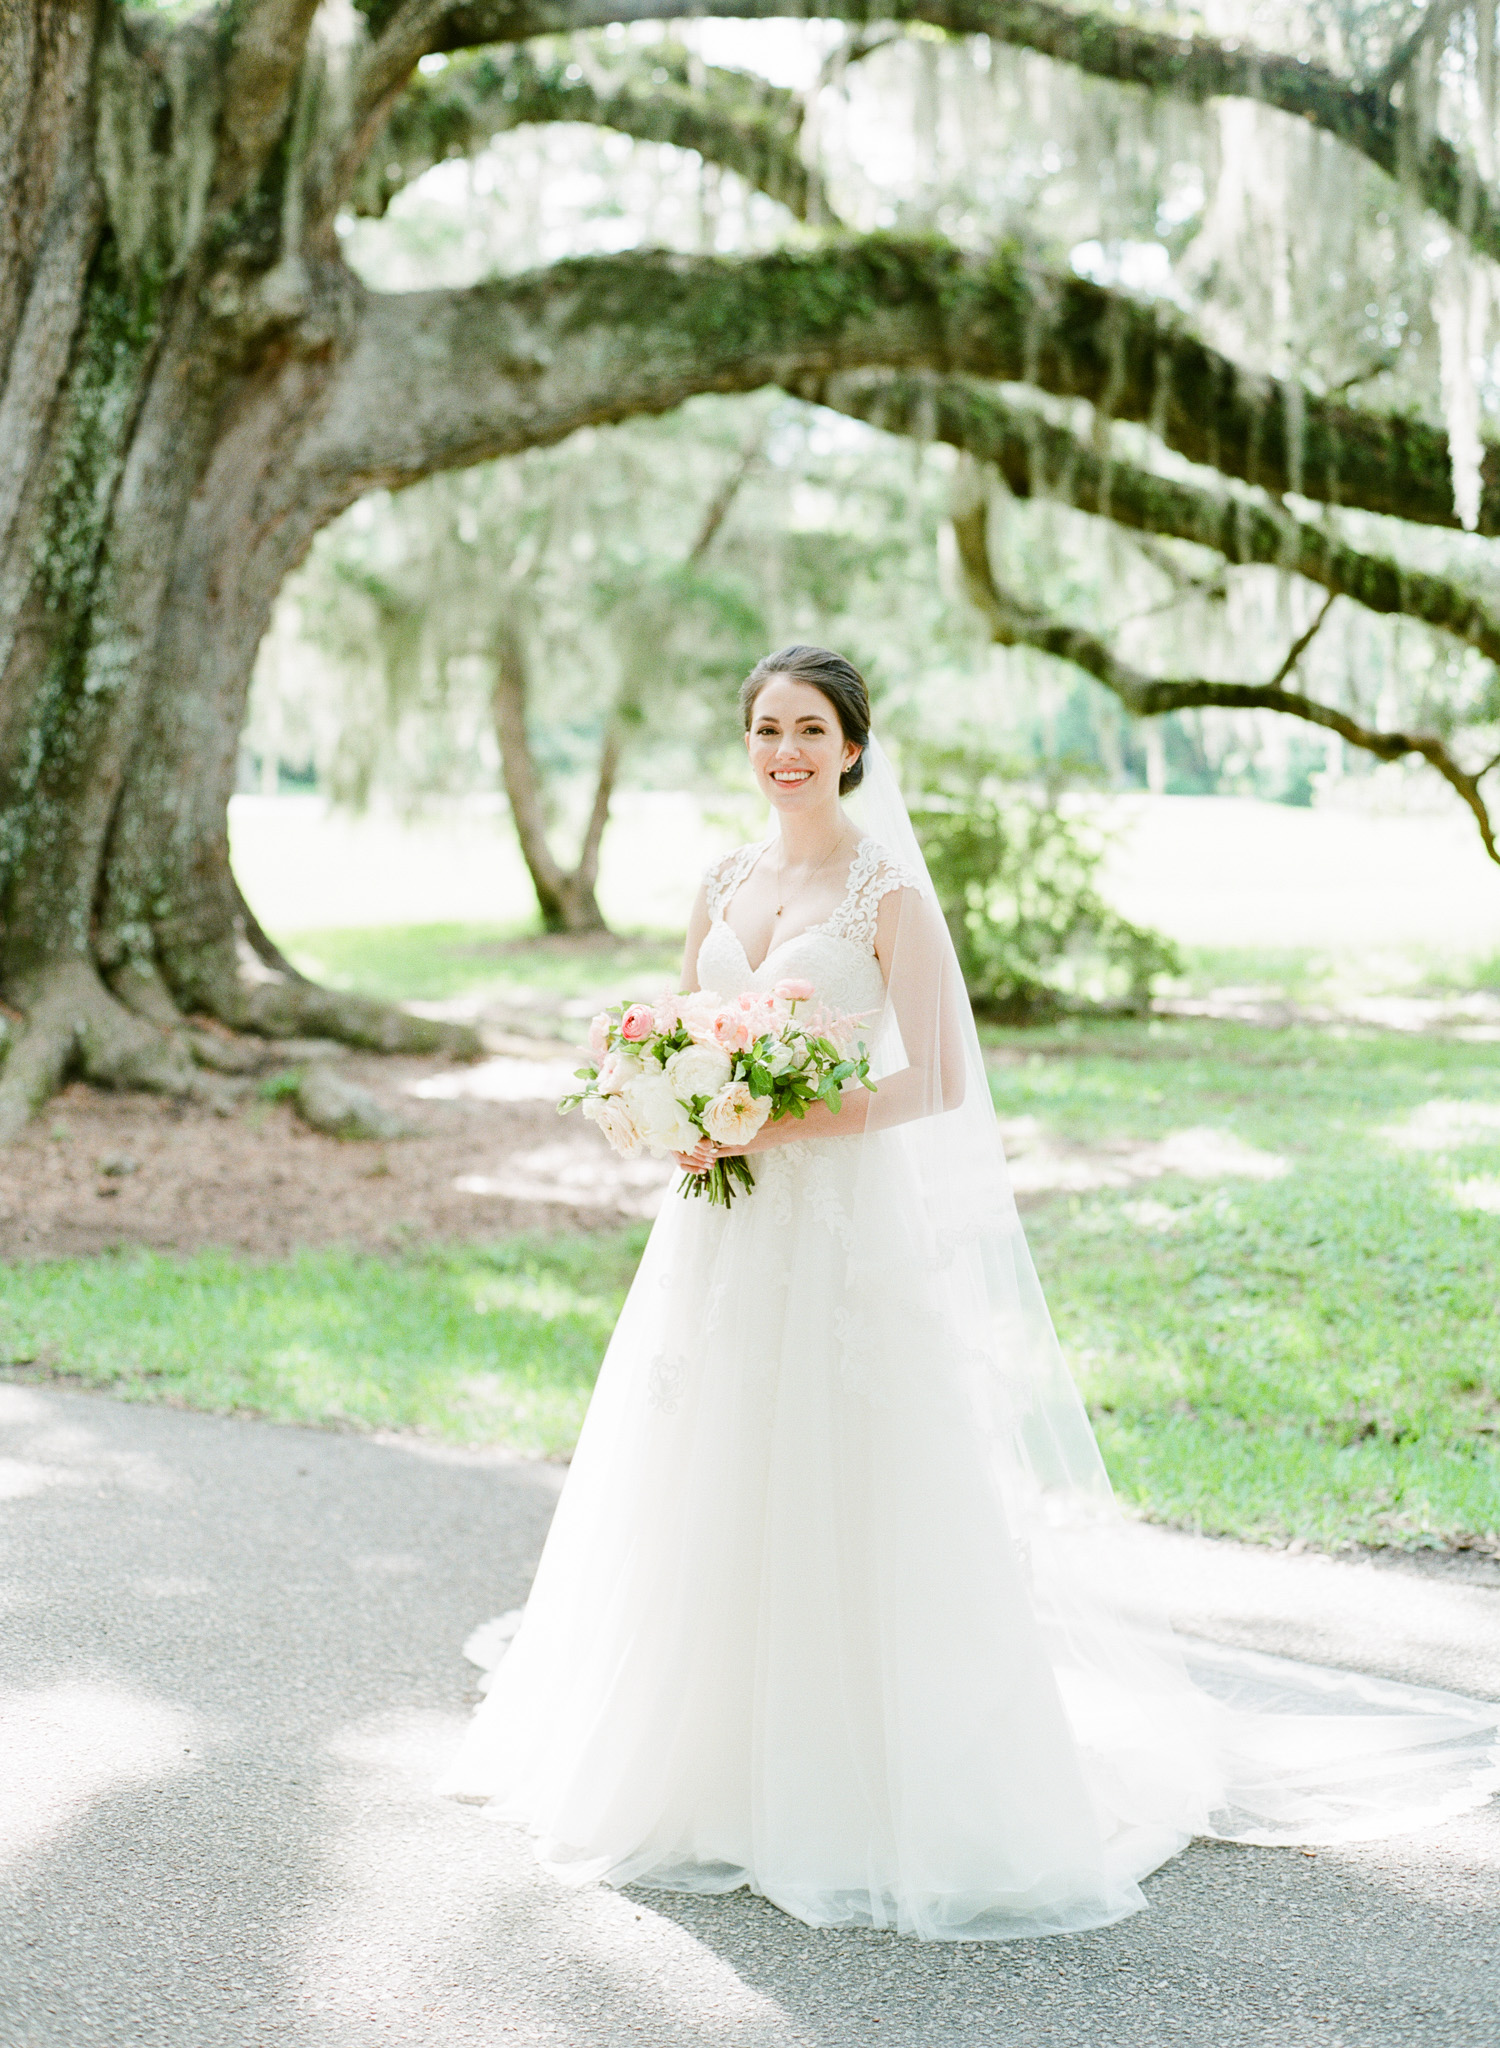 Charleston-Wedding-Photographer-The-Cedar-Room-31.jpg